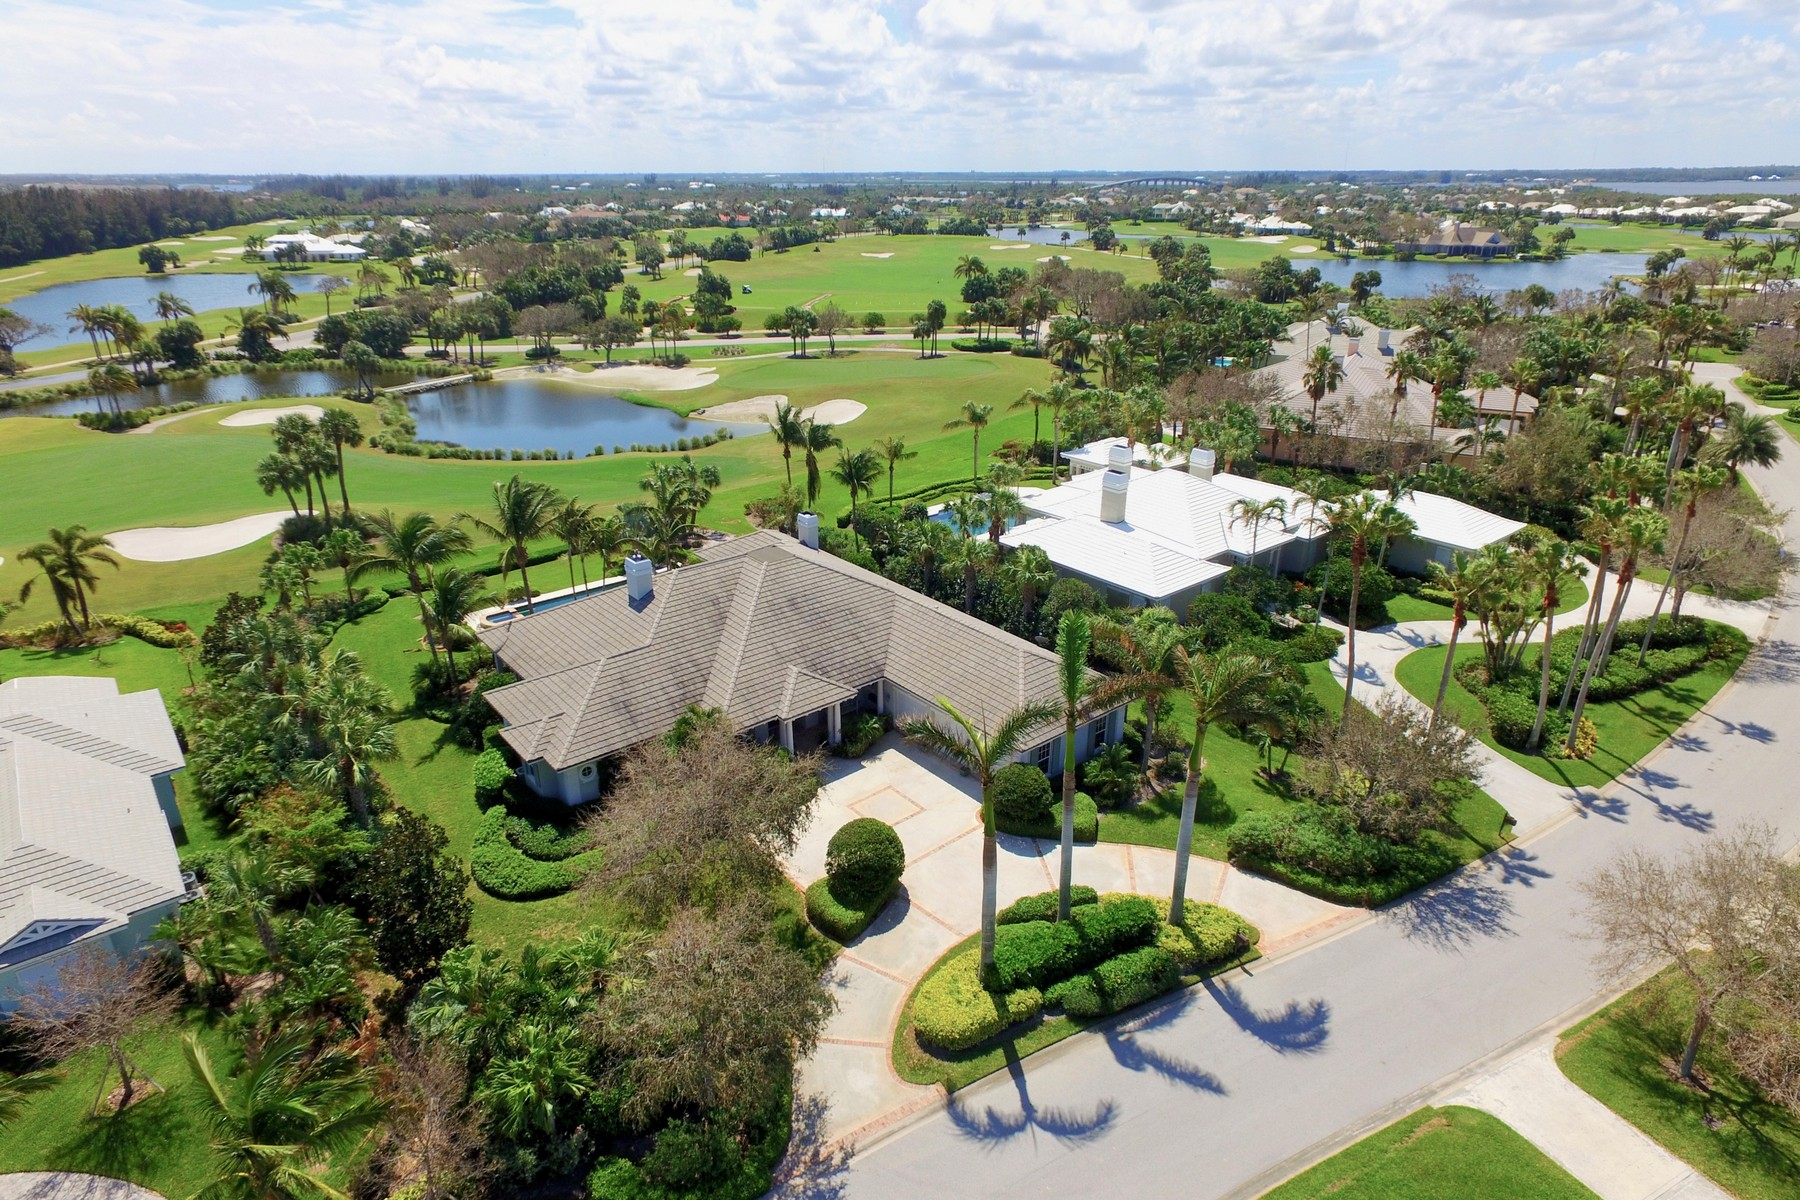 Vivienda unifamiliar por un Venta en Lakefront Home with Endless Golf Views 130 Seaspray Lane, Vero Beach, Florida, 32963 Estados Unidos